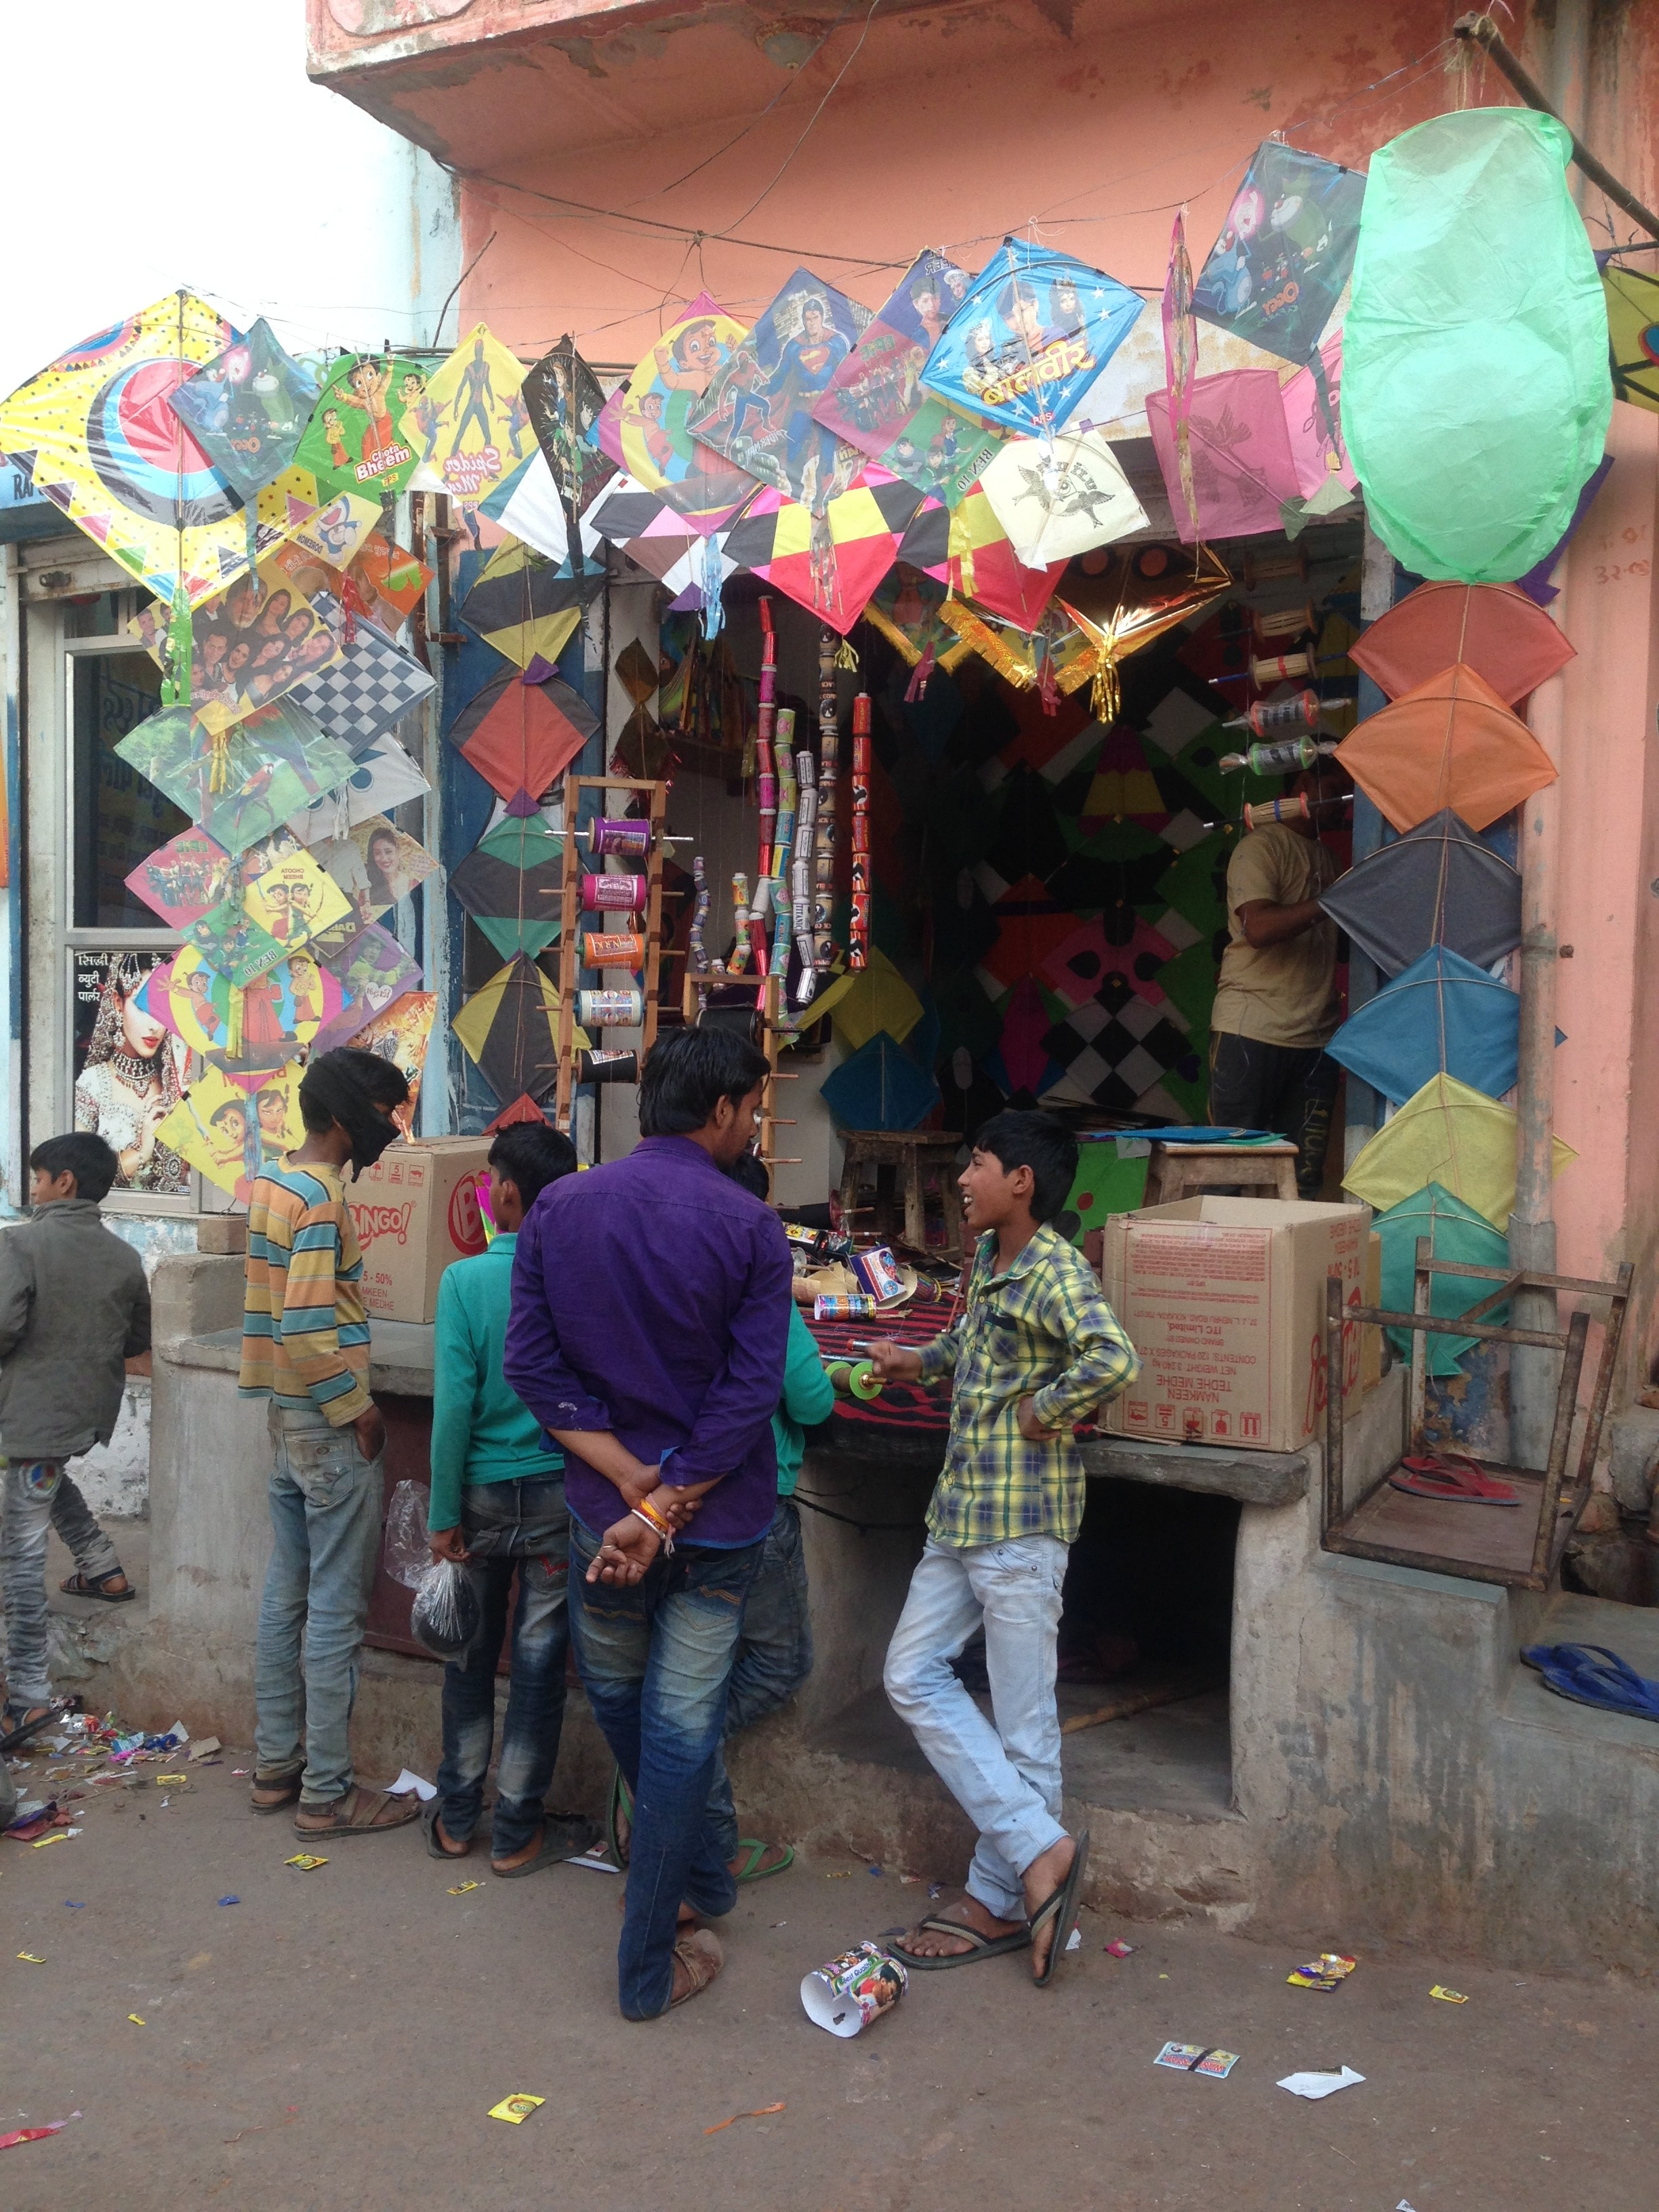 Kite festival India local kite shop